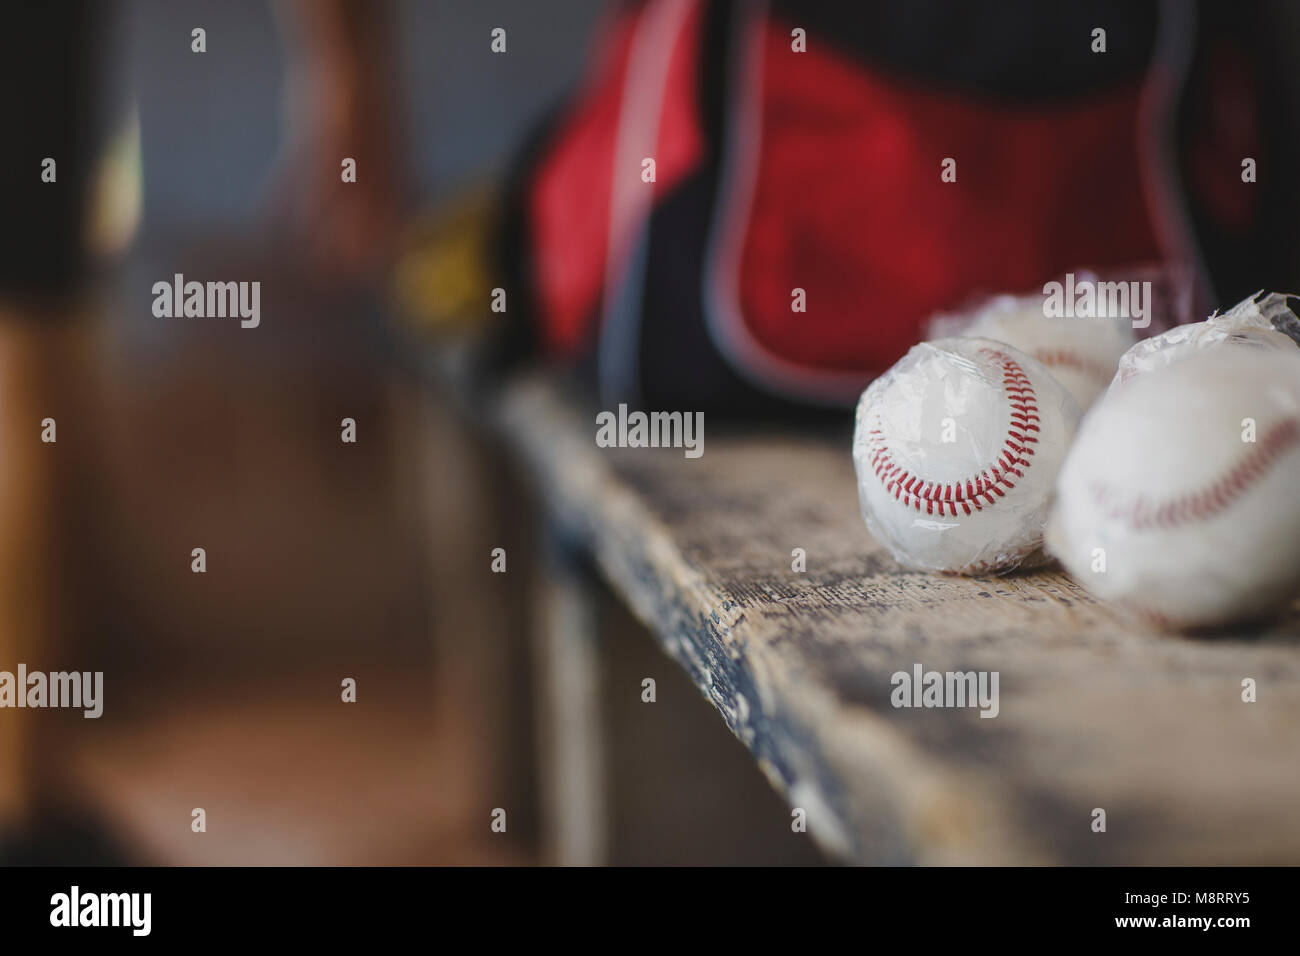 Close-up of baseball balls on table in sports dugout - Stock Image